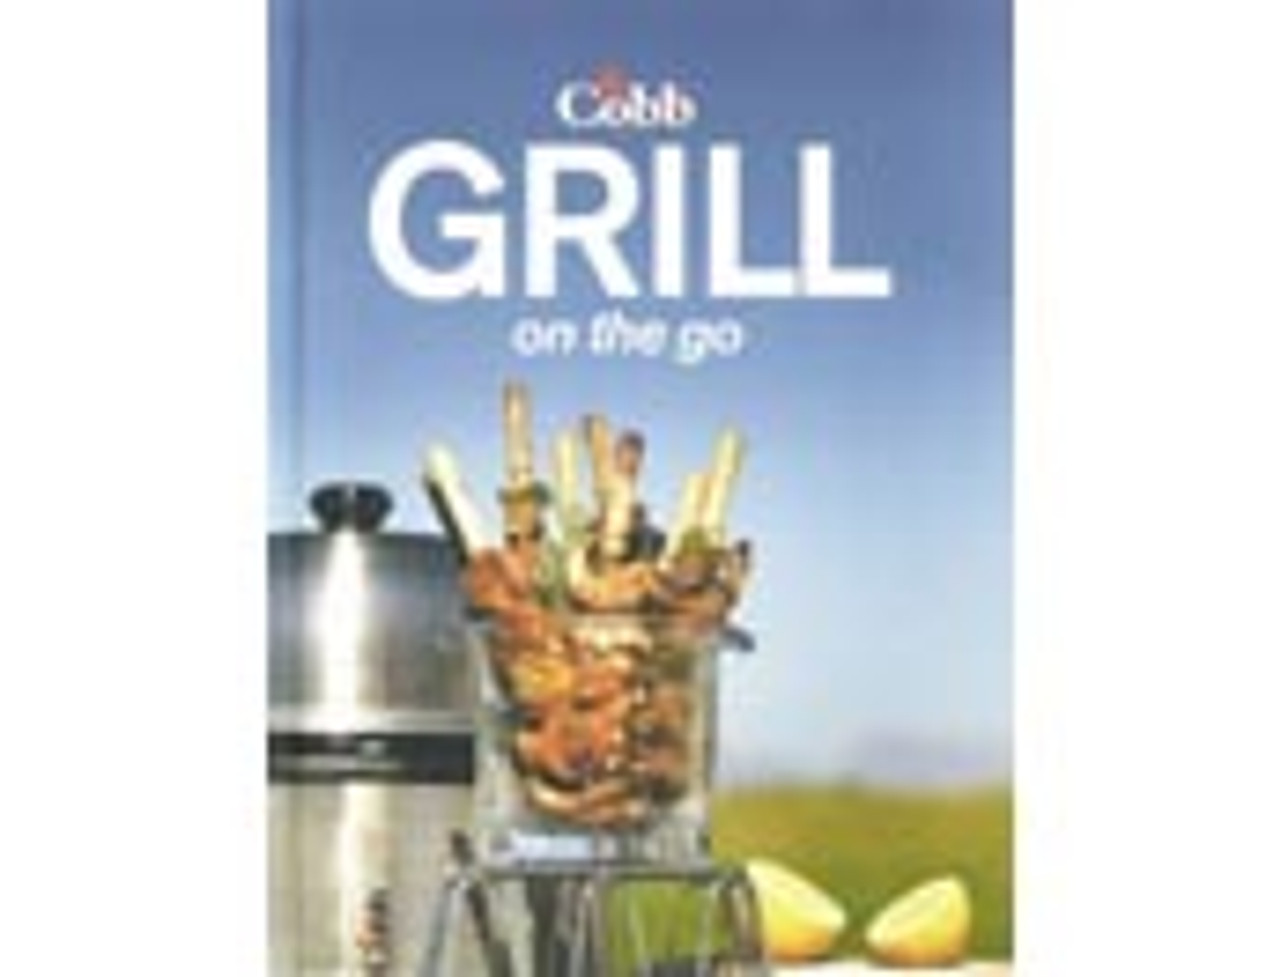 Grill on the Go recipe book